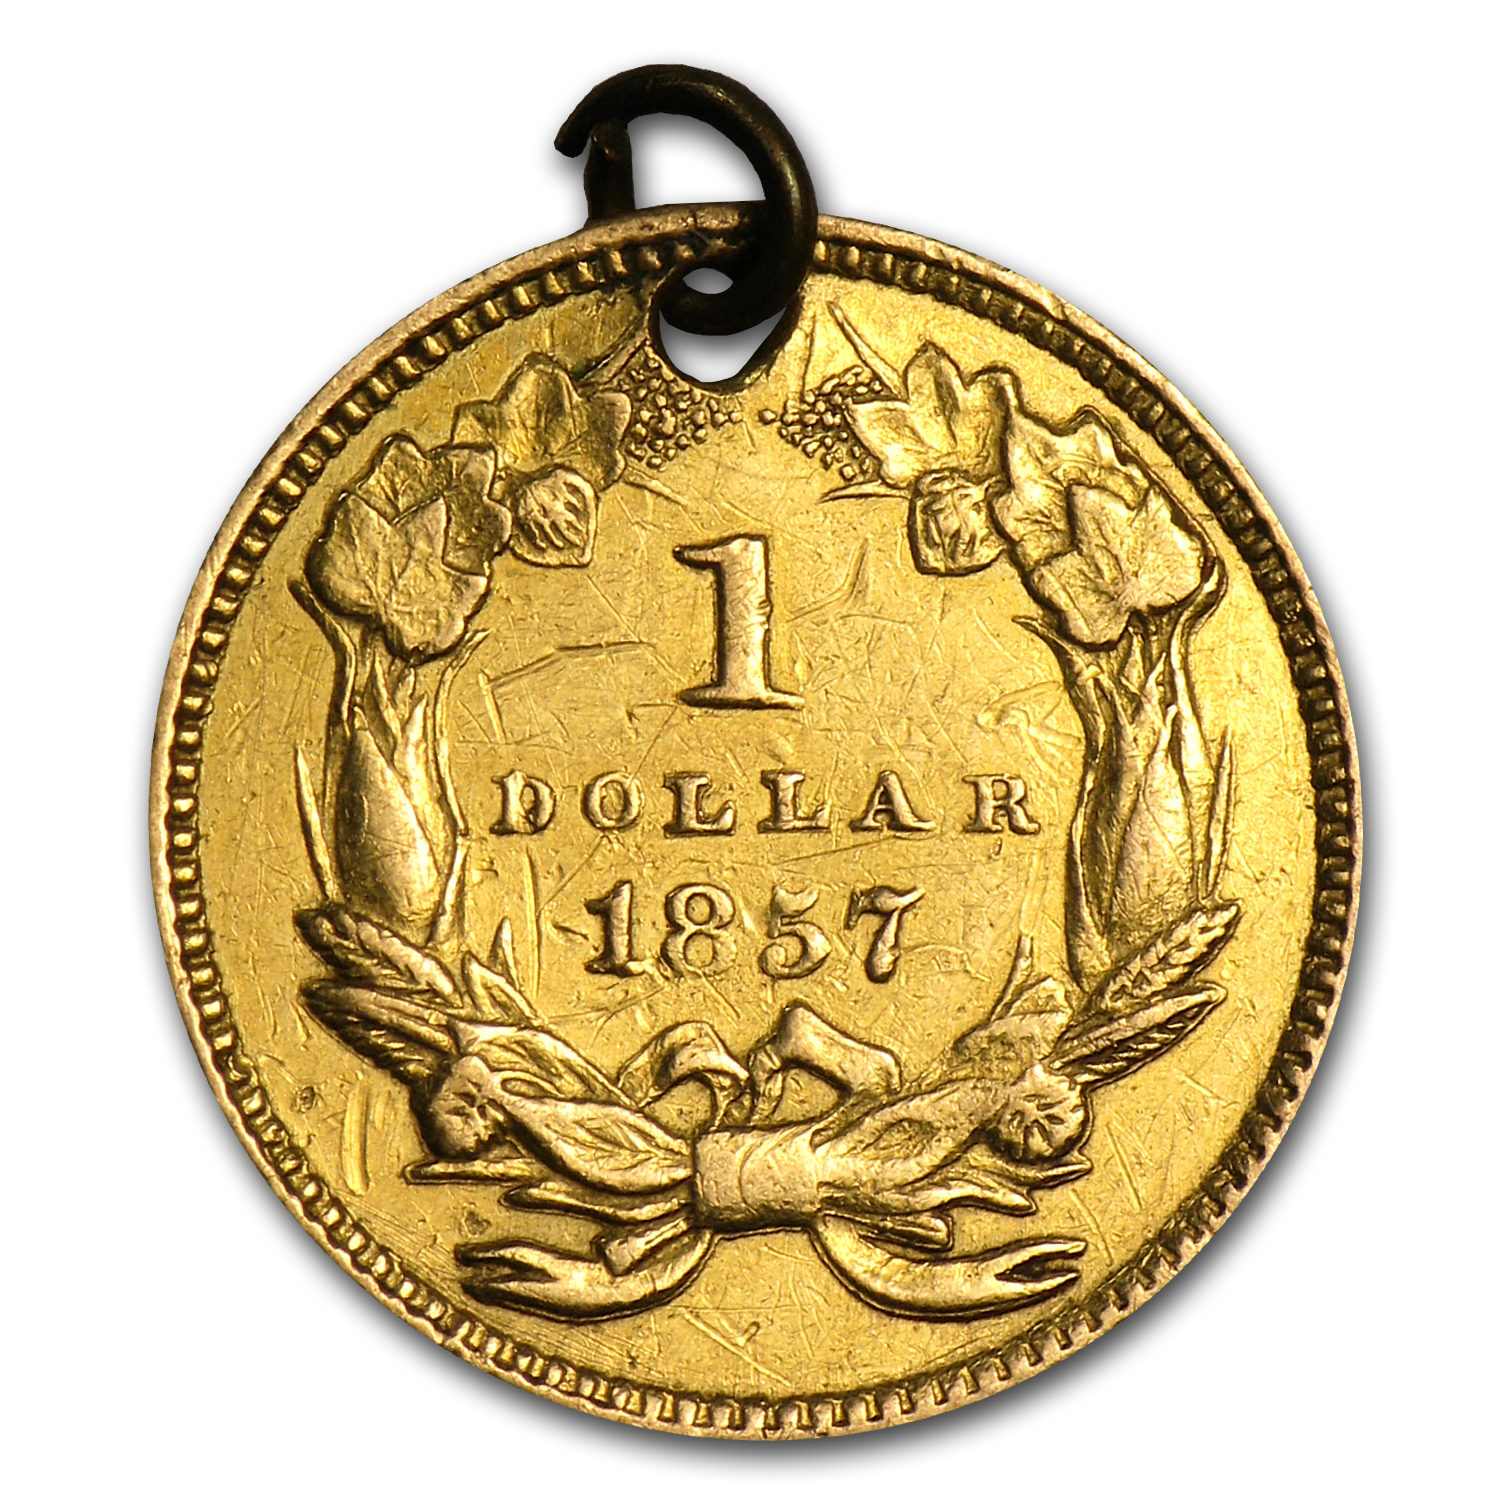 $1.00 Liberty Gold-Type III - 1857 Love Token - C L Z